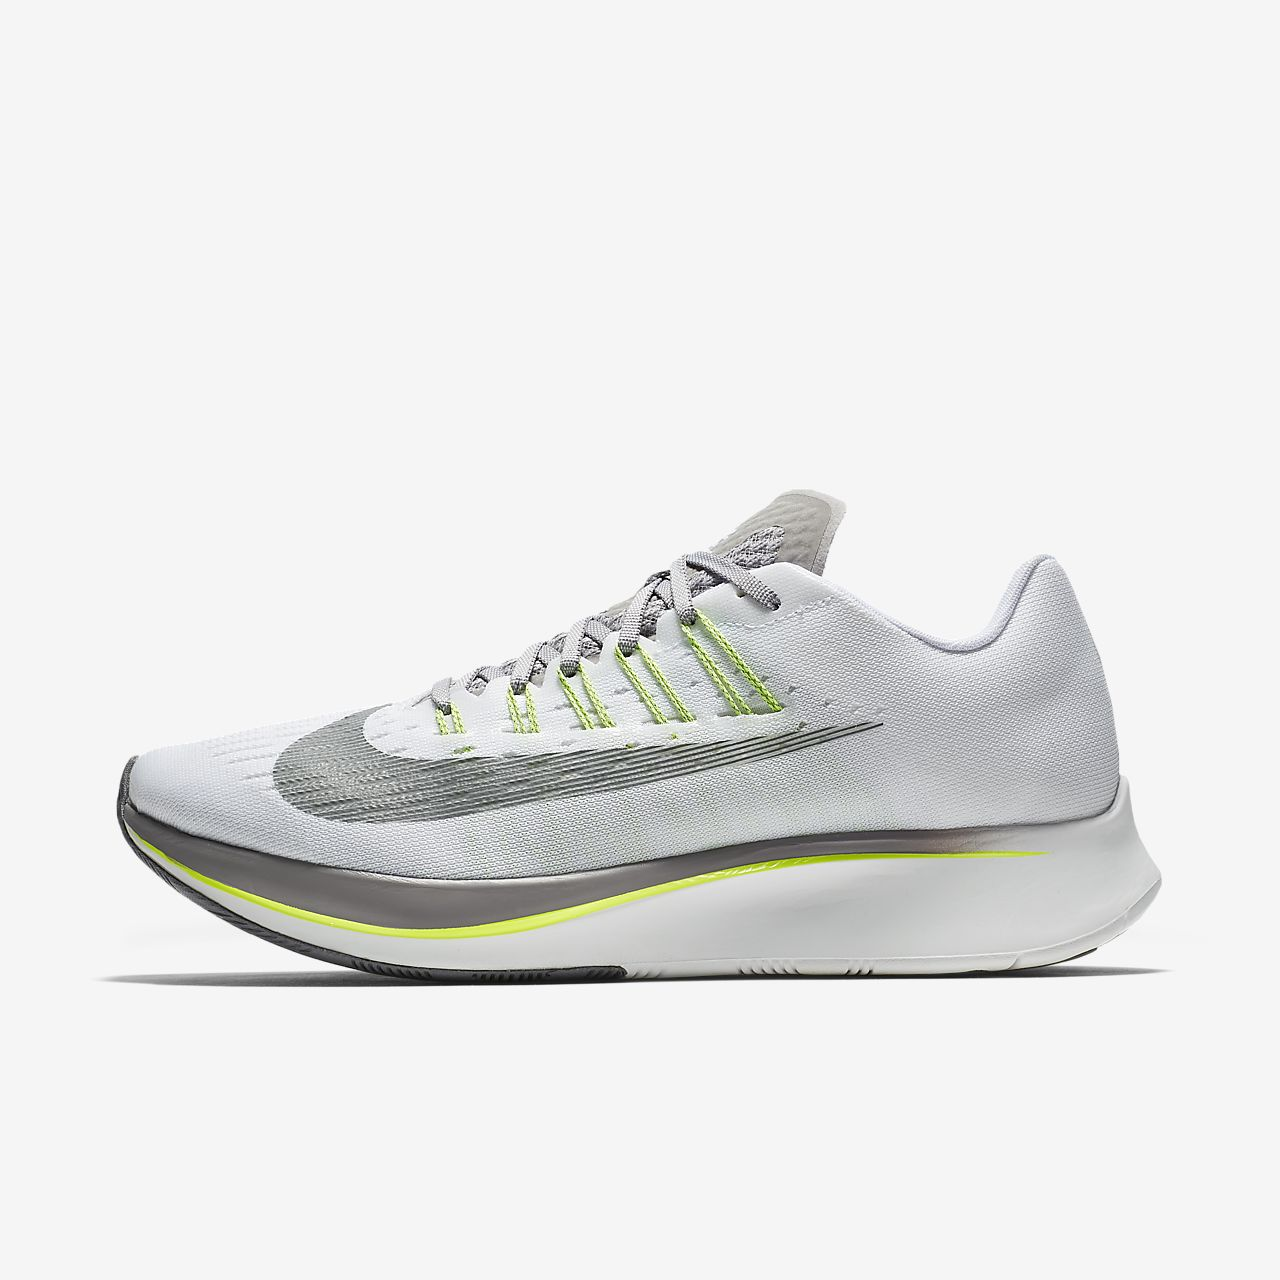 d6ef8f85d17aa2 Nike Zoom Fly Men s Running Shoe. Nike.com